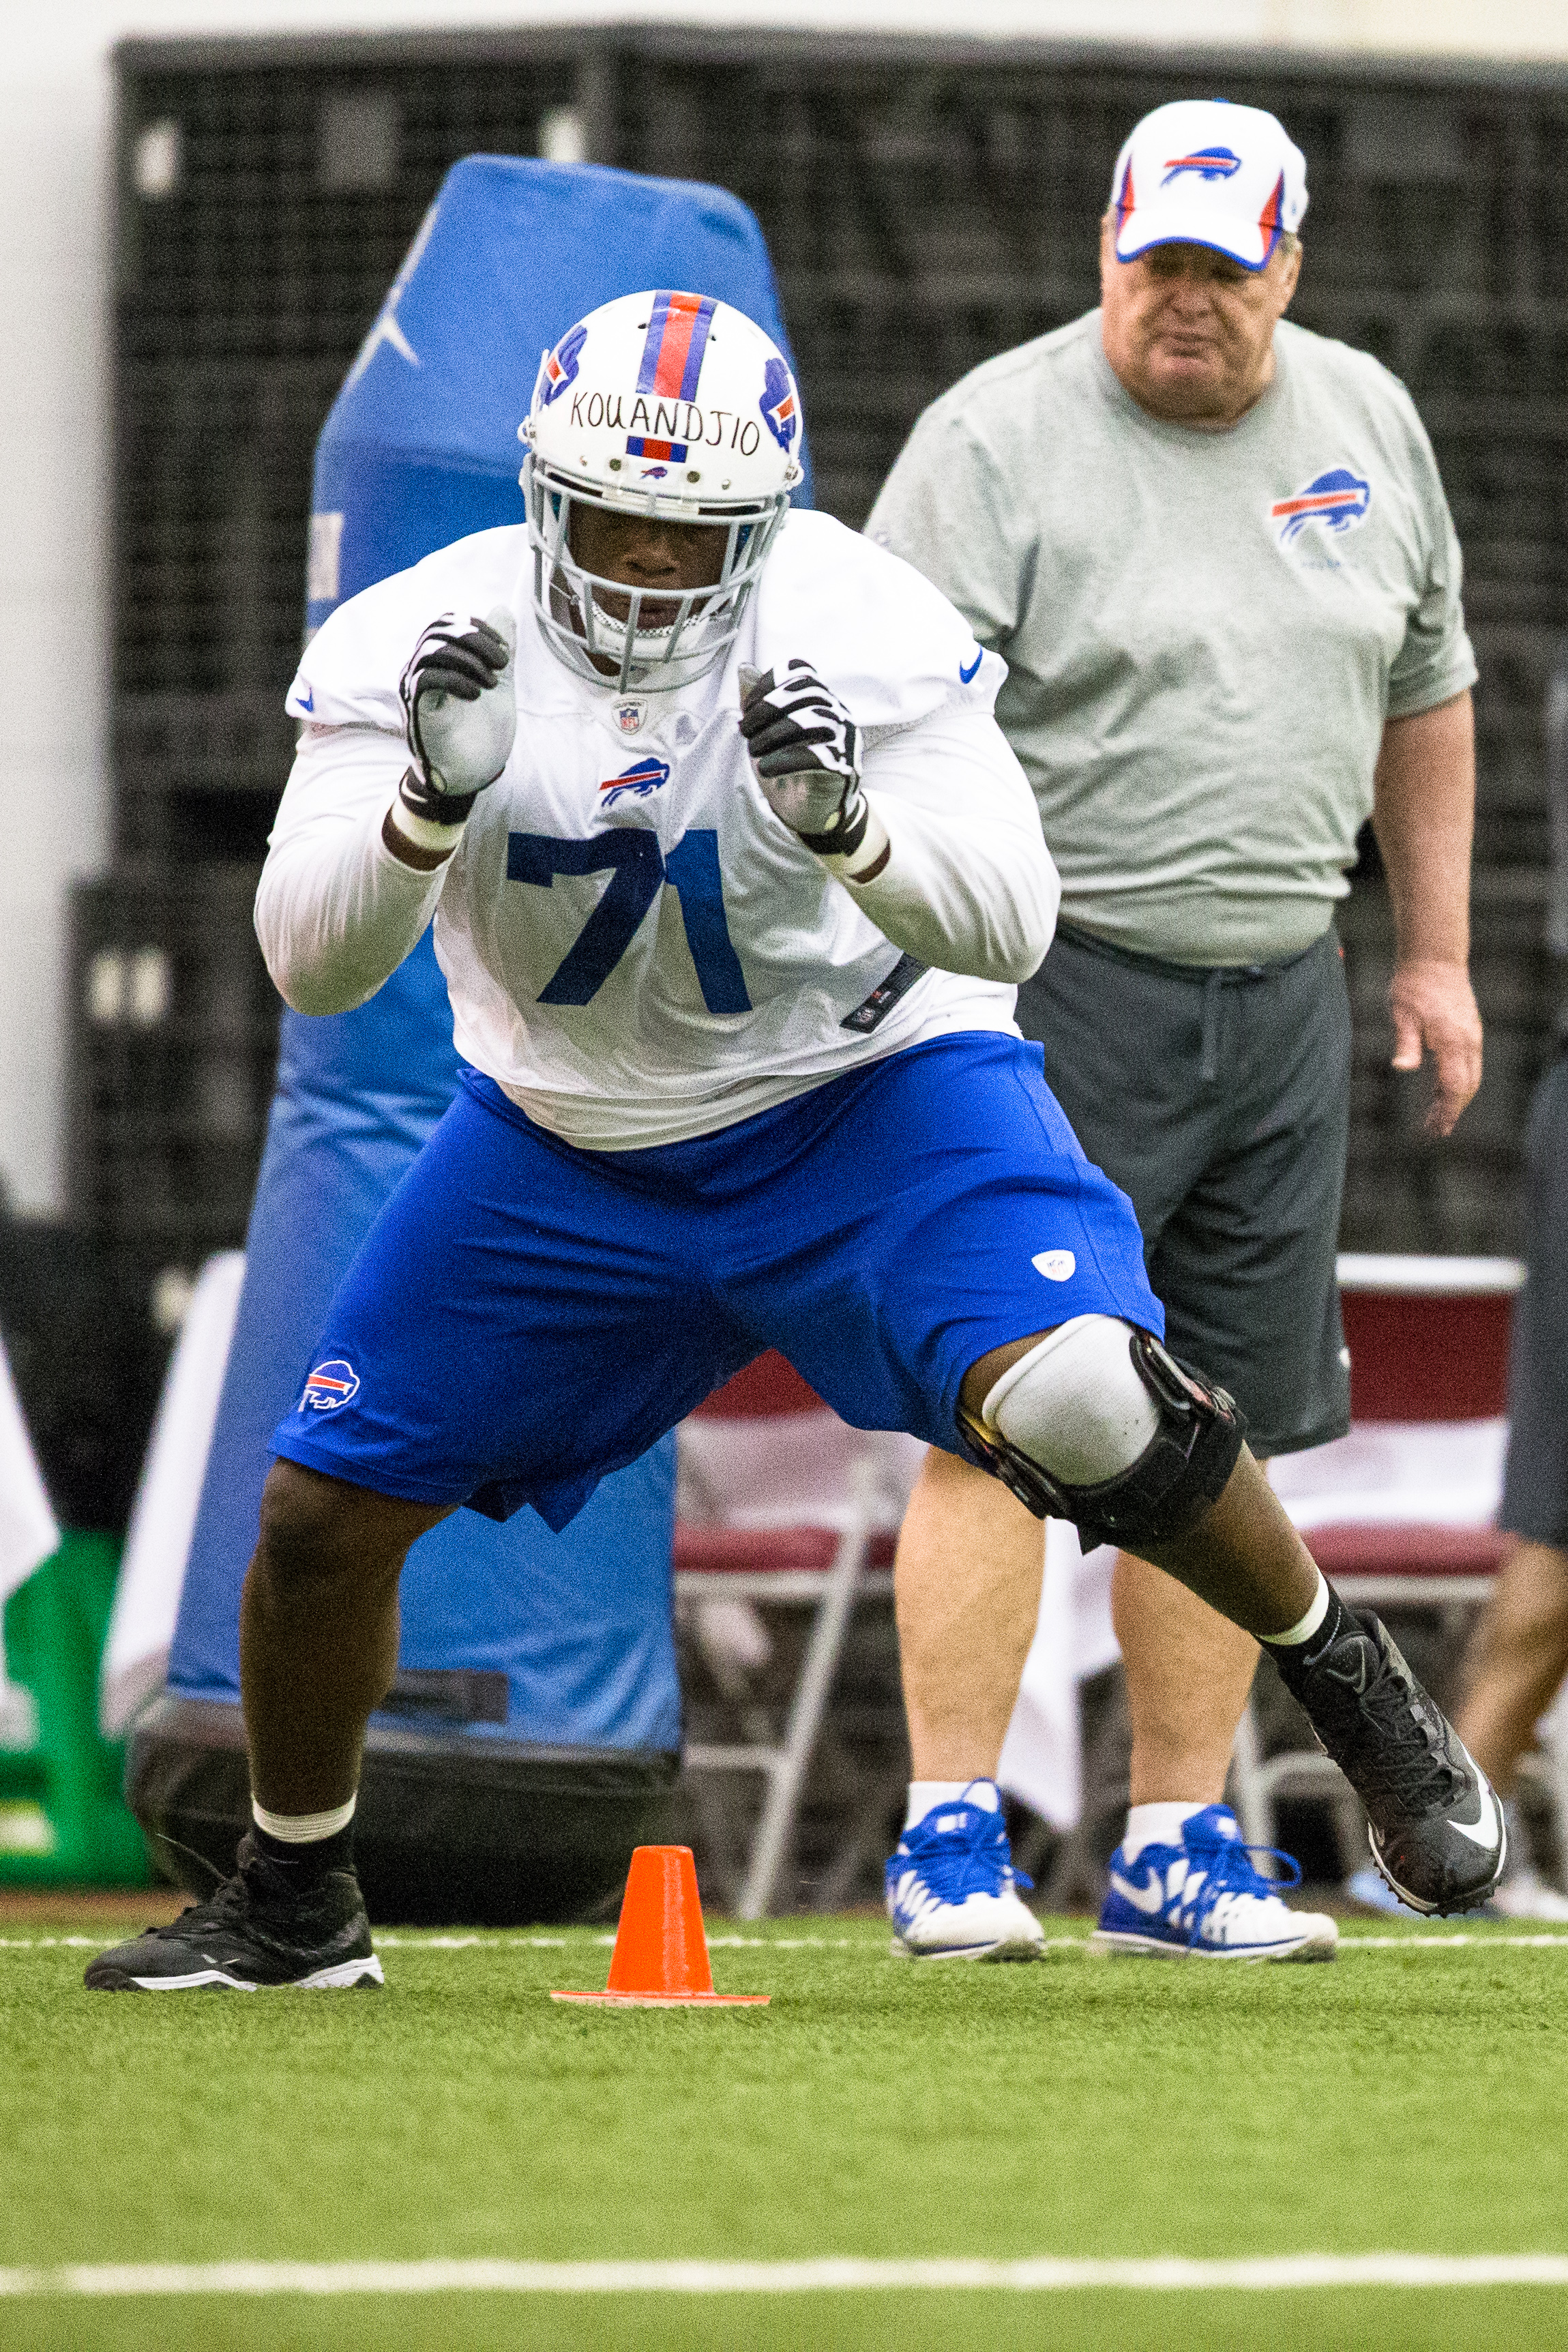 ORCHARD PARK, NY – May 18:  Cyrus Kouandjio #71 of Buffalo Bills takes part in drills during the Buffalo Bills rookie minicamp on May 18, 2014 at Ralph Wilson Stadium in Orchard Park, New York.  (Photo by Brett Carlsen/Getty Images)